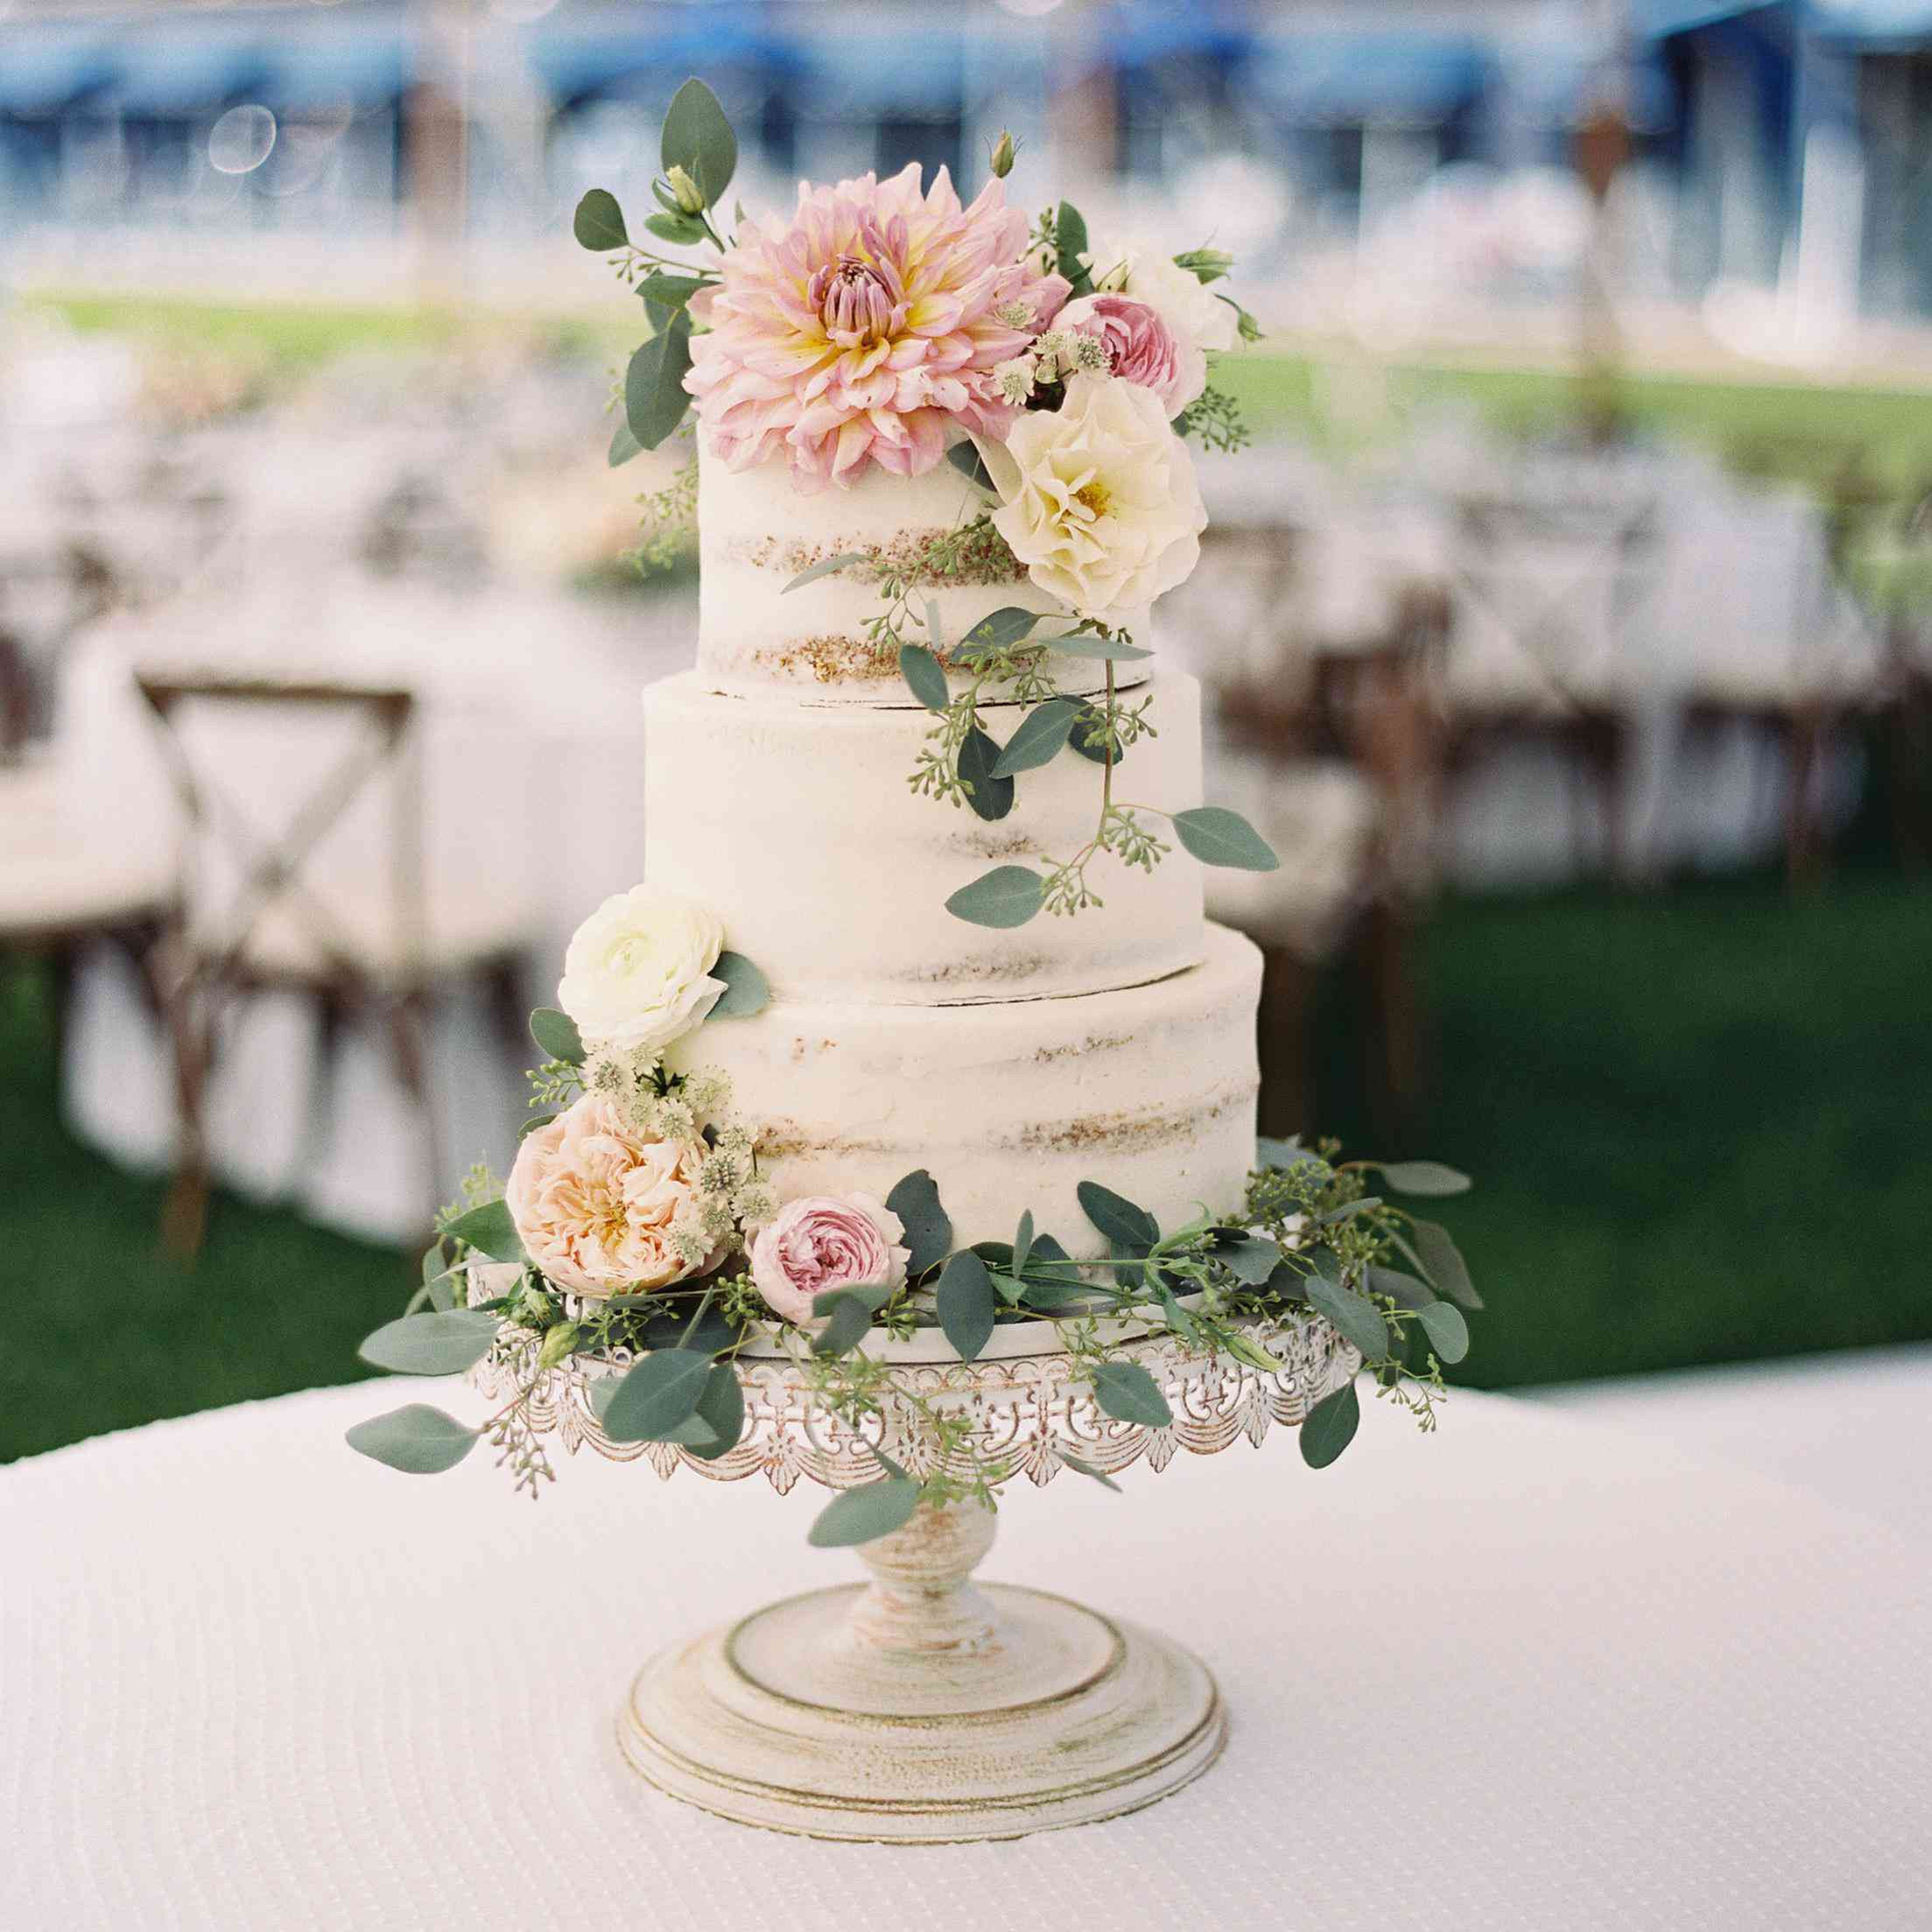 Wedding Cake Ideas Pinterest: 27 Pretty Wedding Cakes That Are Ready For Spring